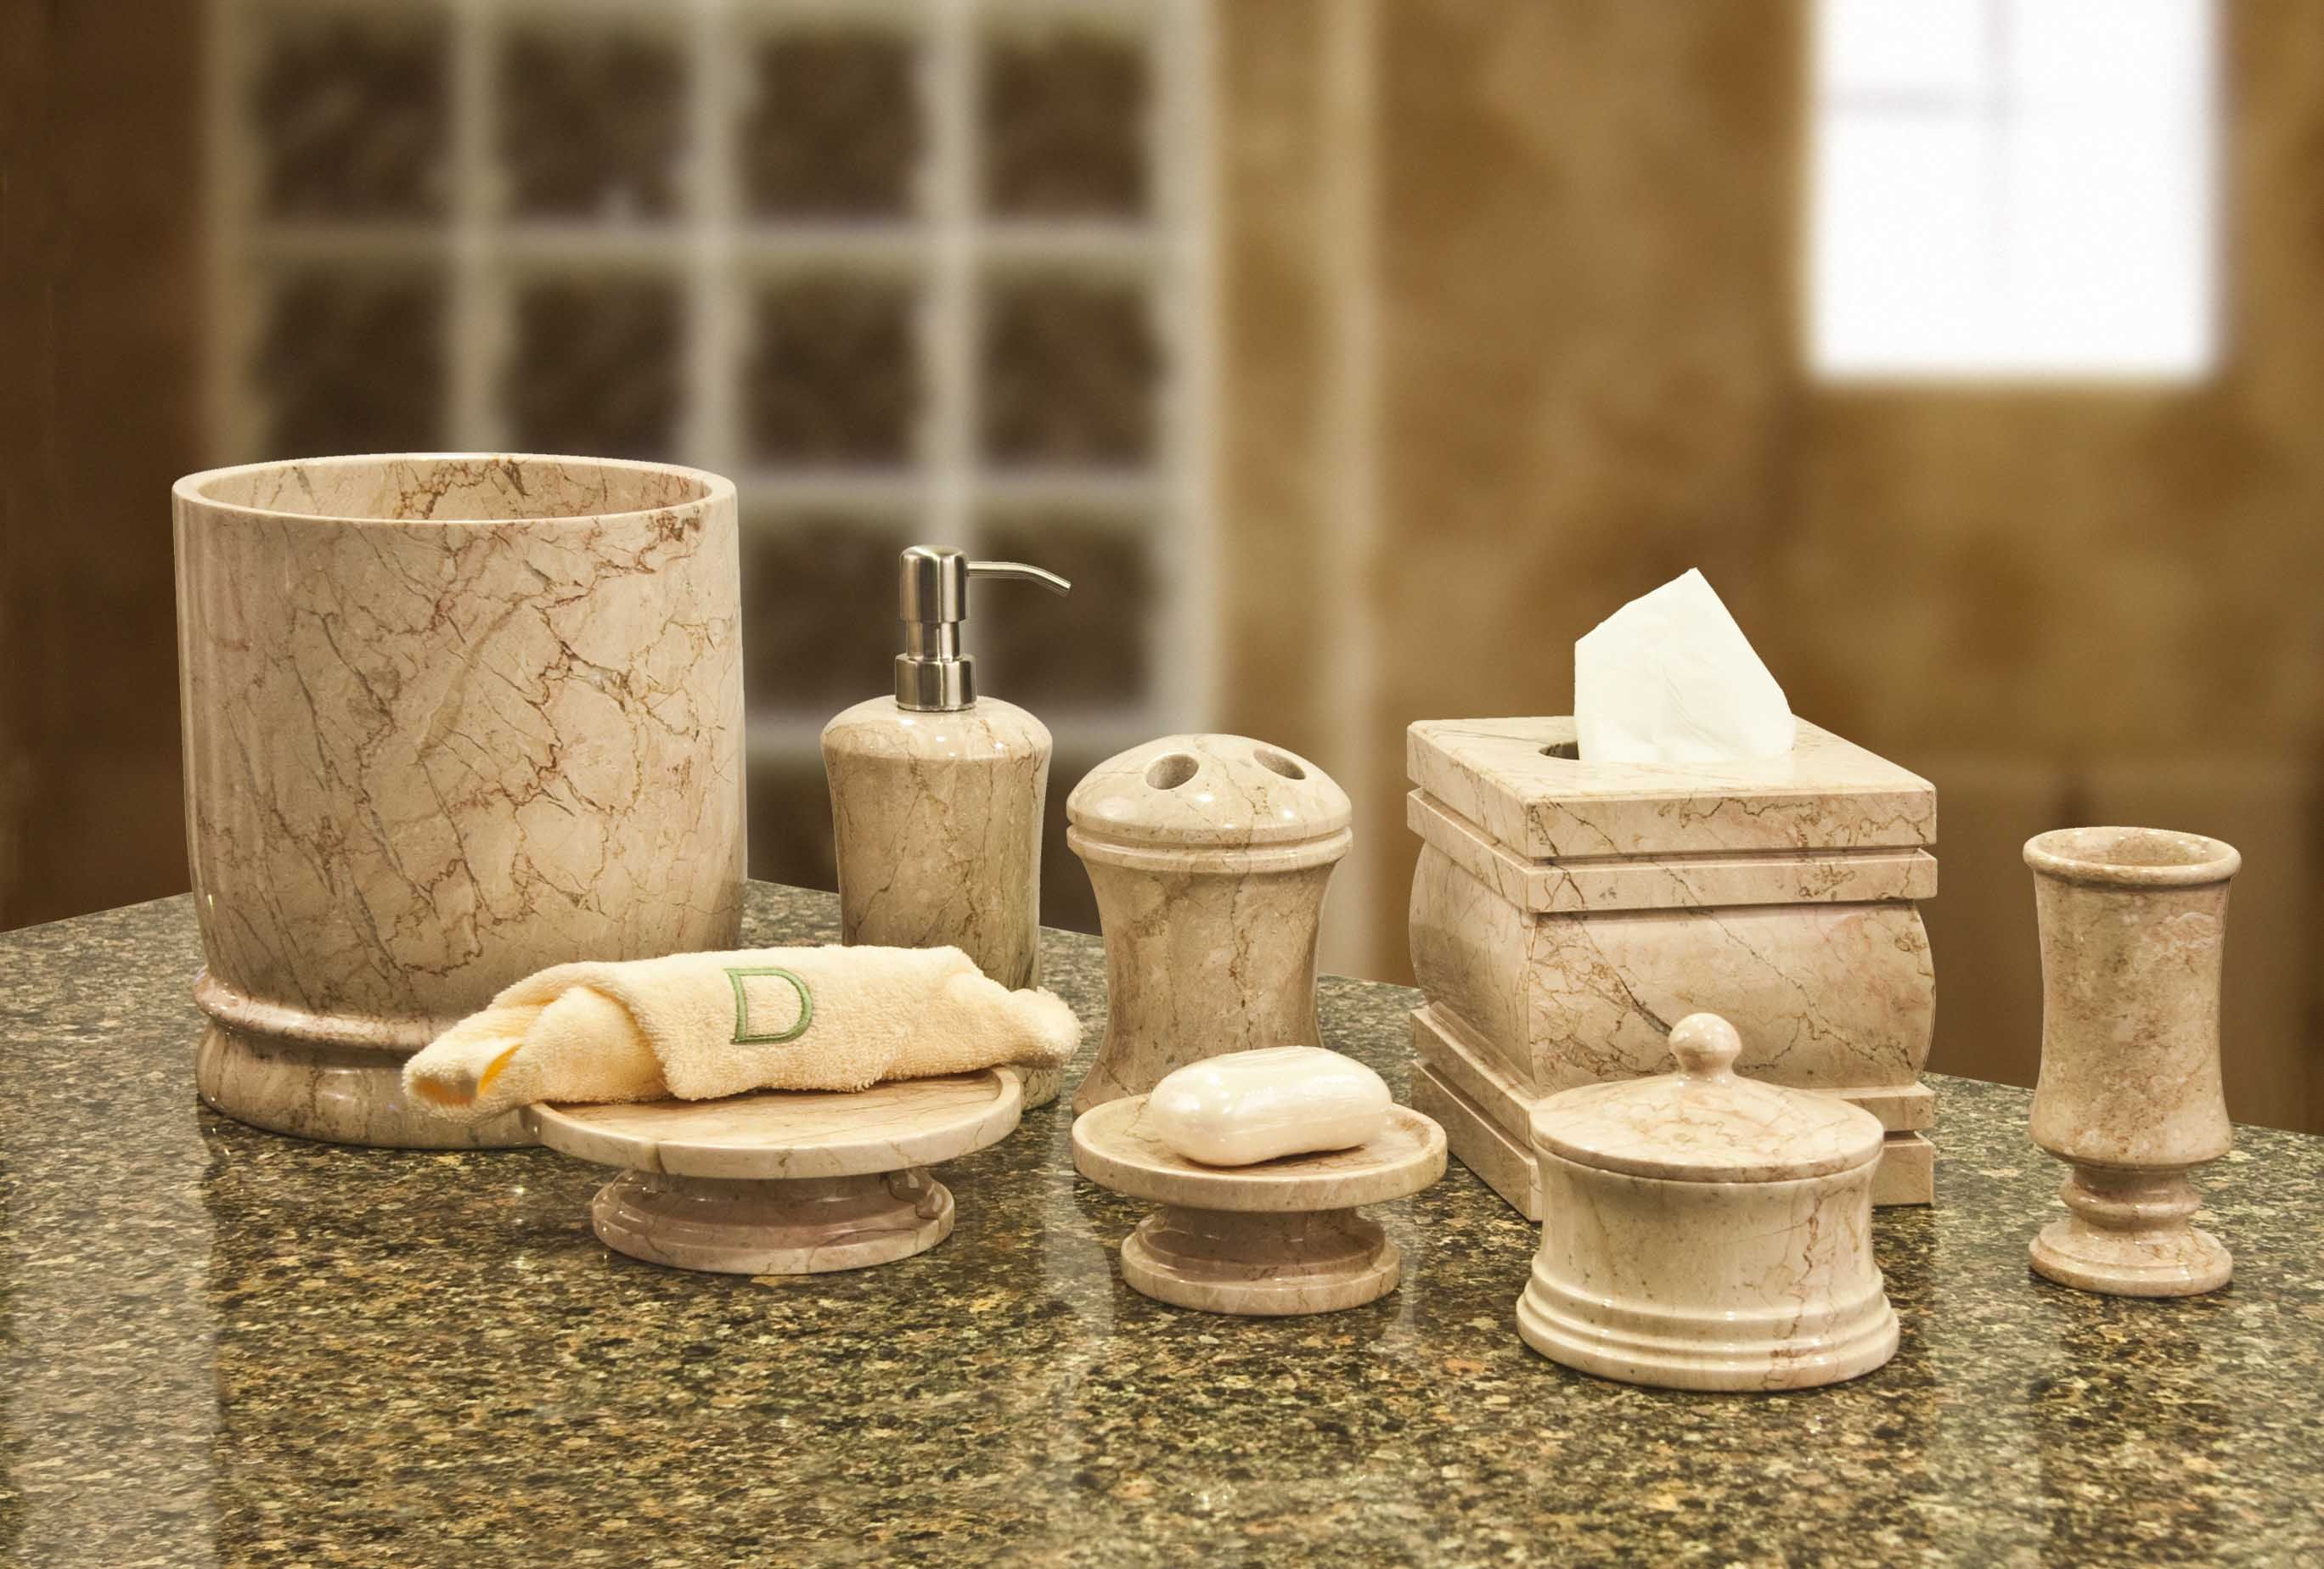 Bath Sets - http://kunertdesign.com/bath-sets.html?utm_source ...